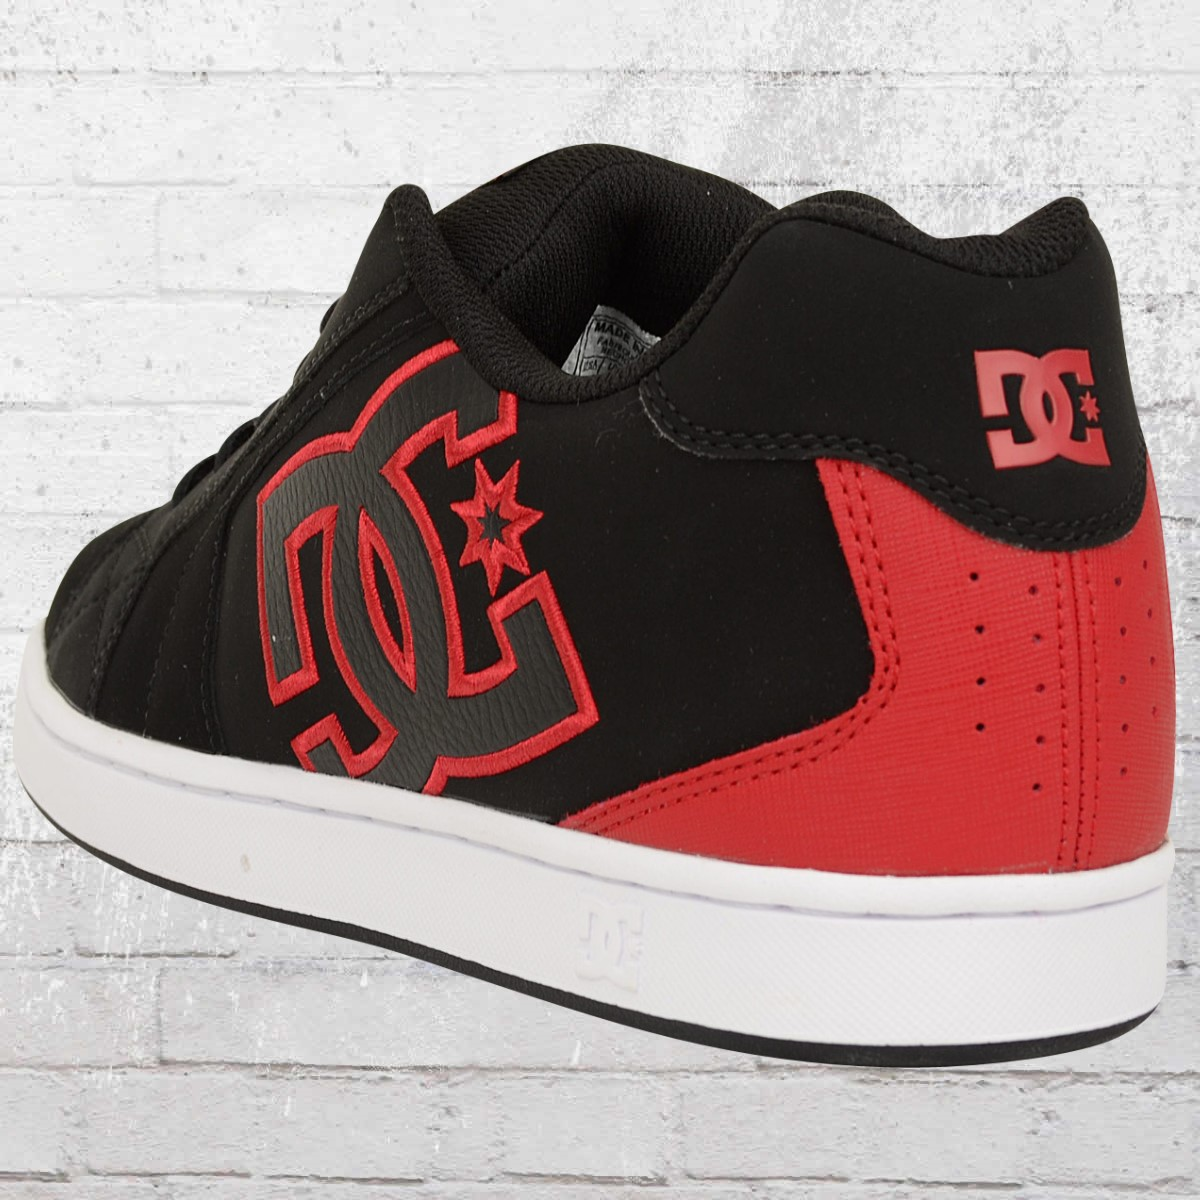 Have you seen? DC Shoes ...